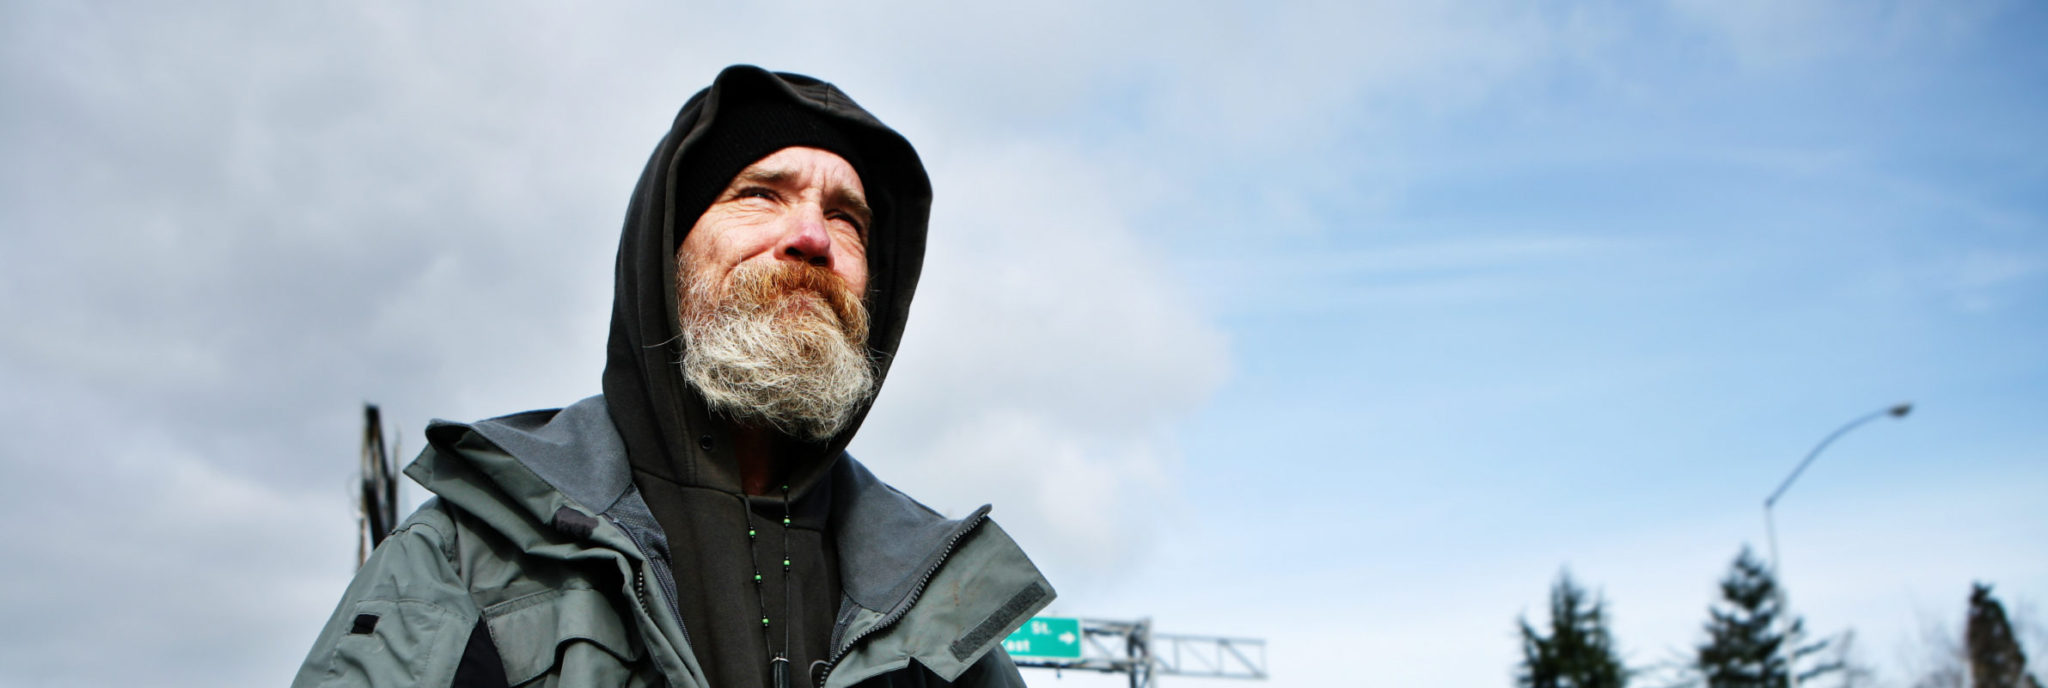 Donate to help Homeless Men in Central Oregon